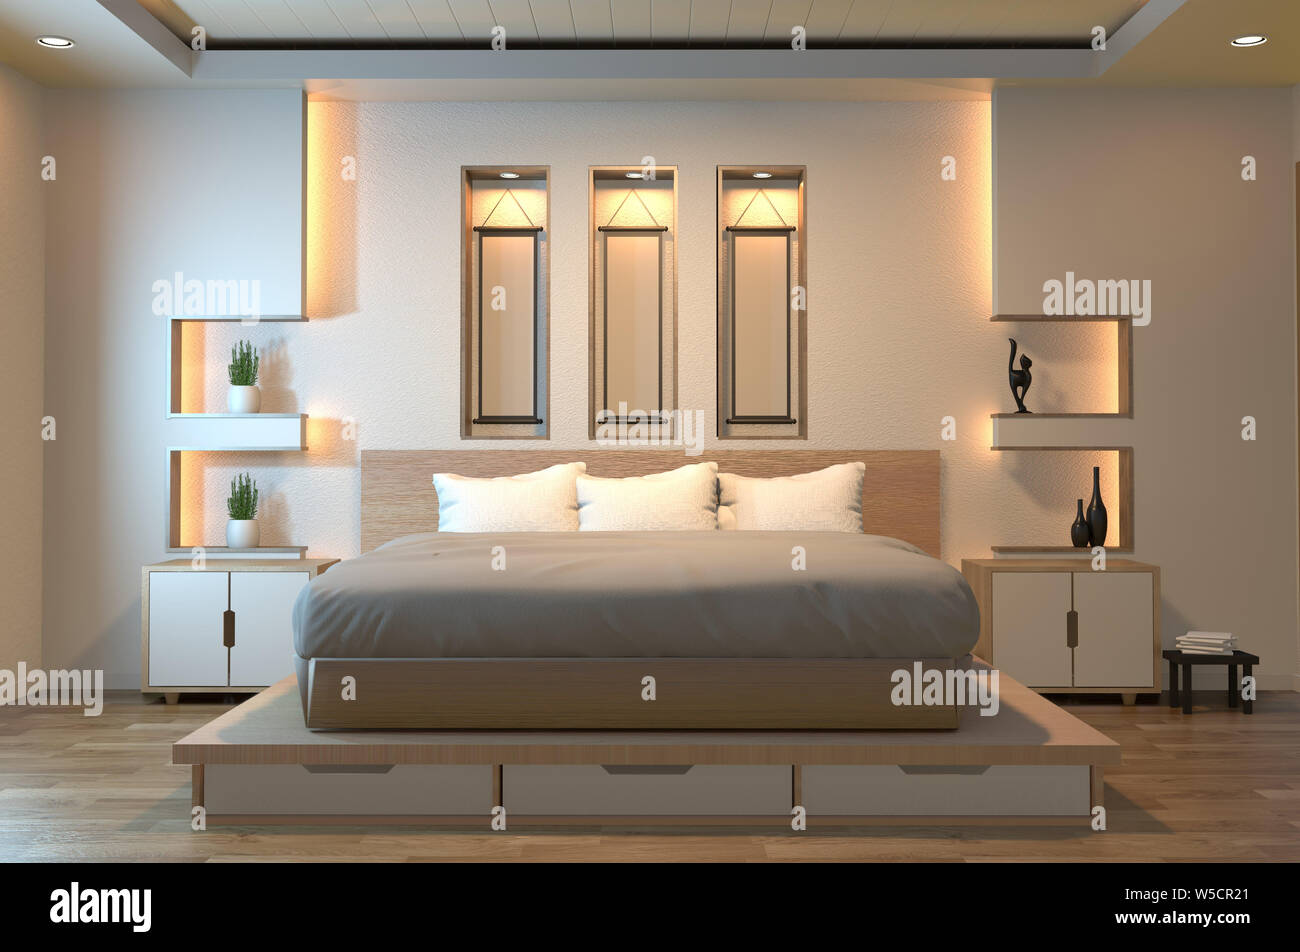 Modern Zen Peaceful Bedroom Japan Style Bedroom With Shelf Wall Design Hidden Light And Decoration Japanese Style 3d Rendering Stock Photo Alamy